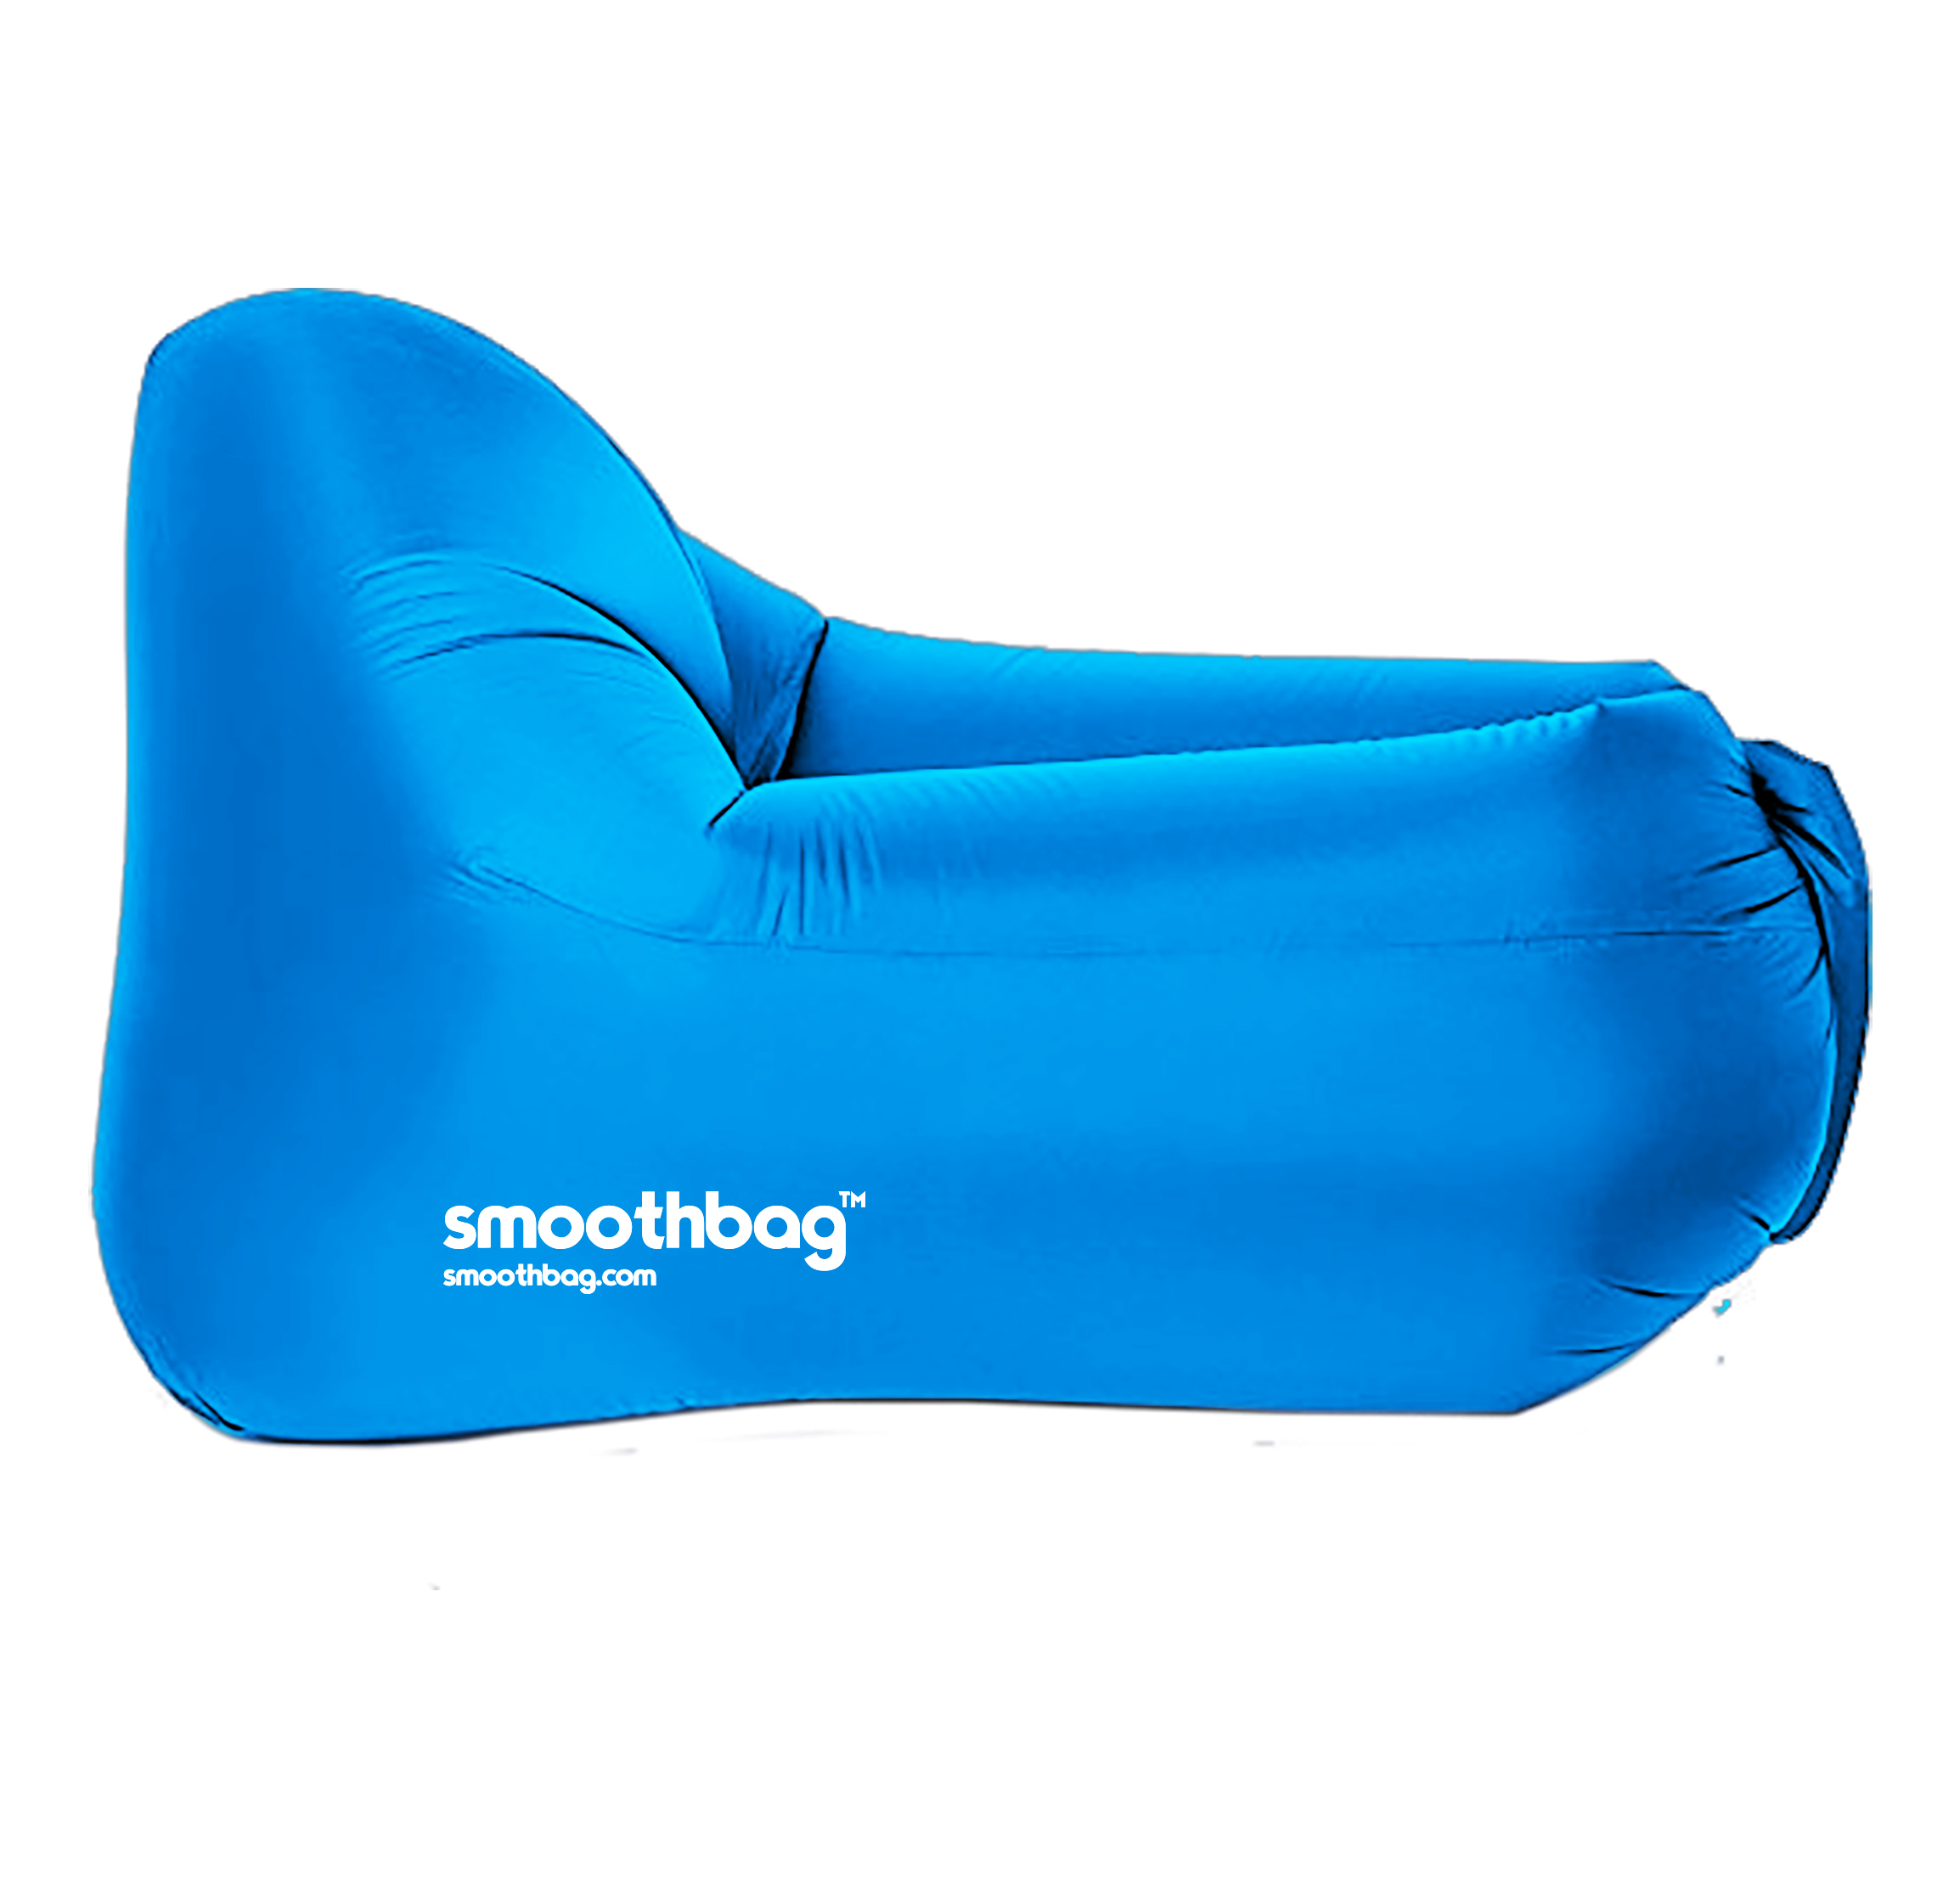 SMOOTHBAG SBCBLUE BLUE  INFLATABLE LOUNGER CHAIR